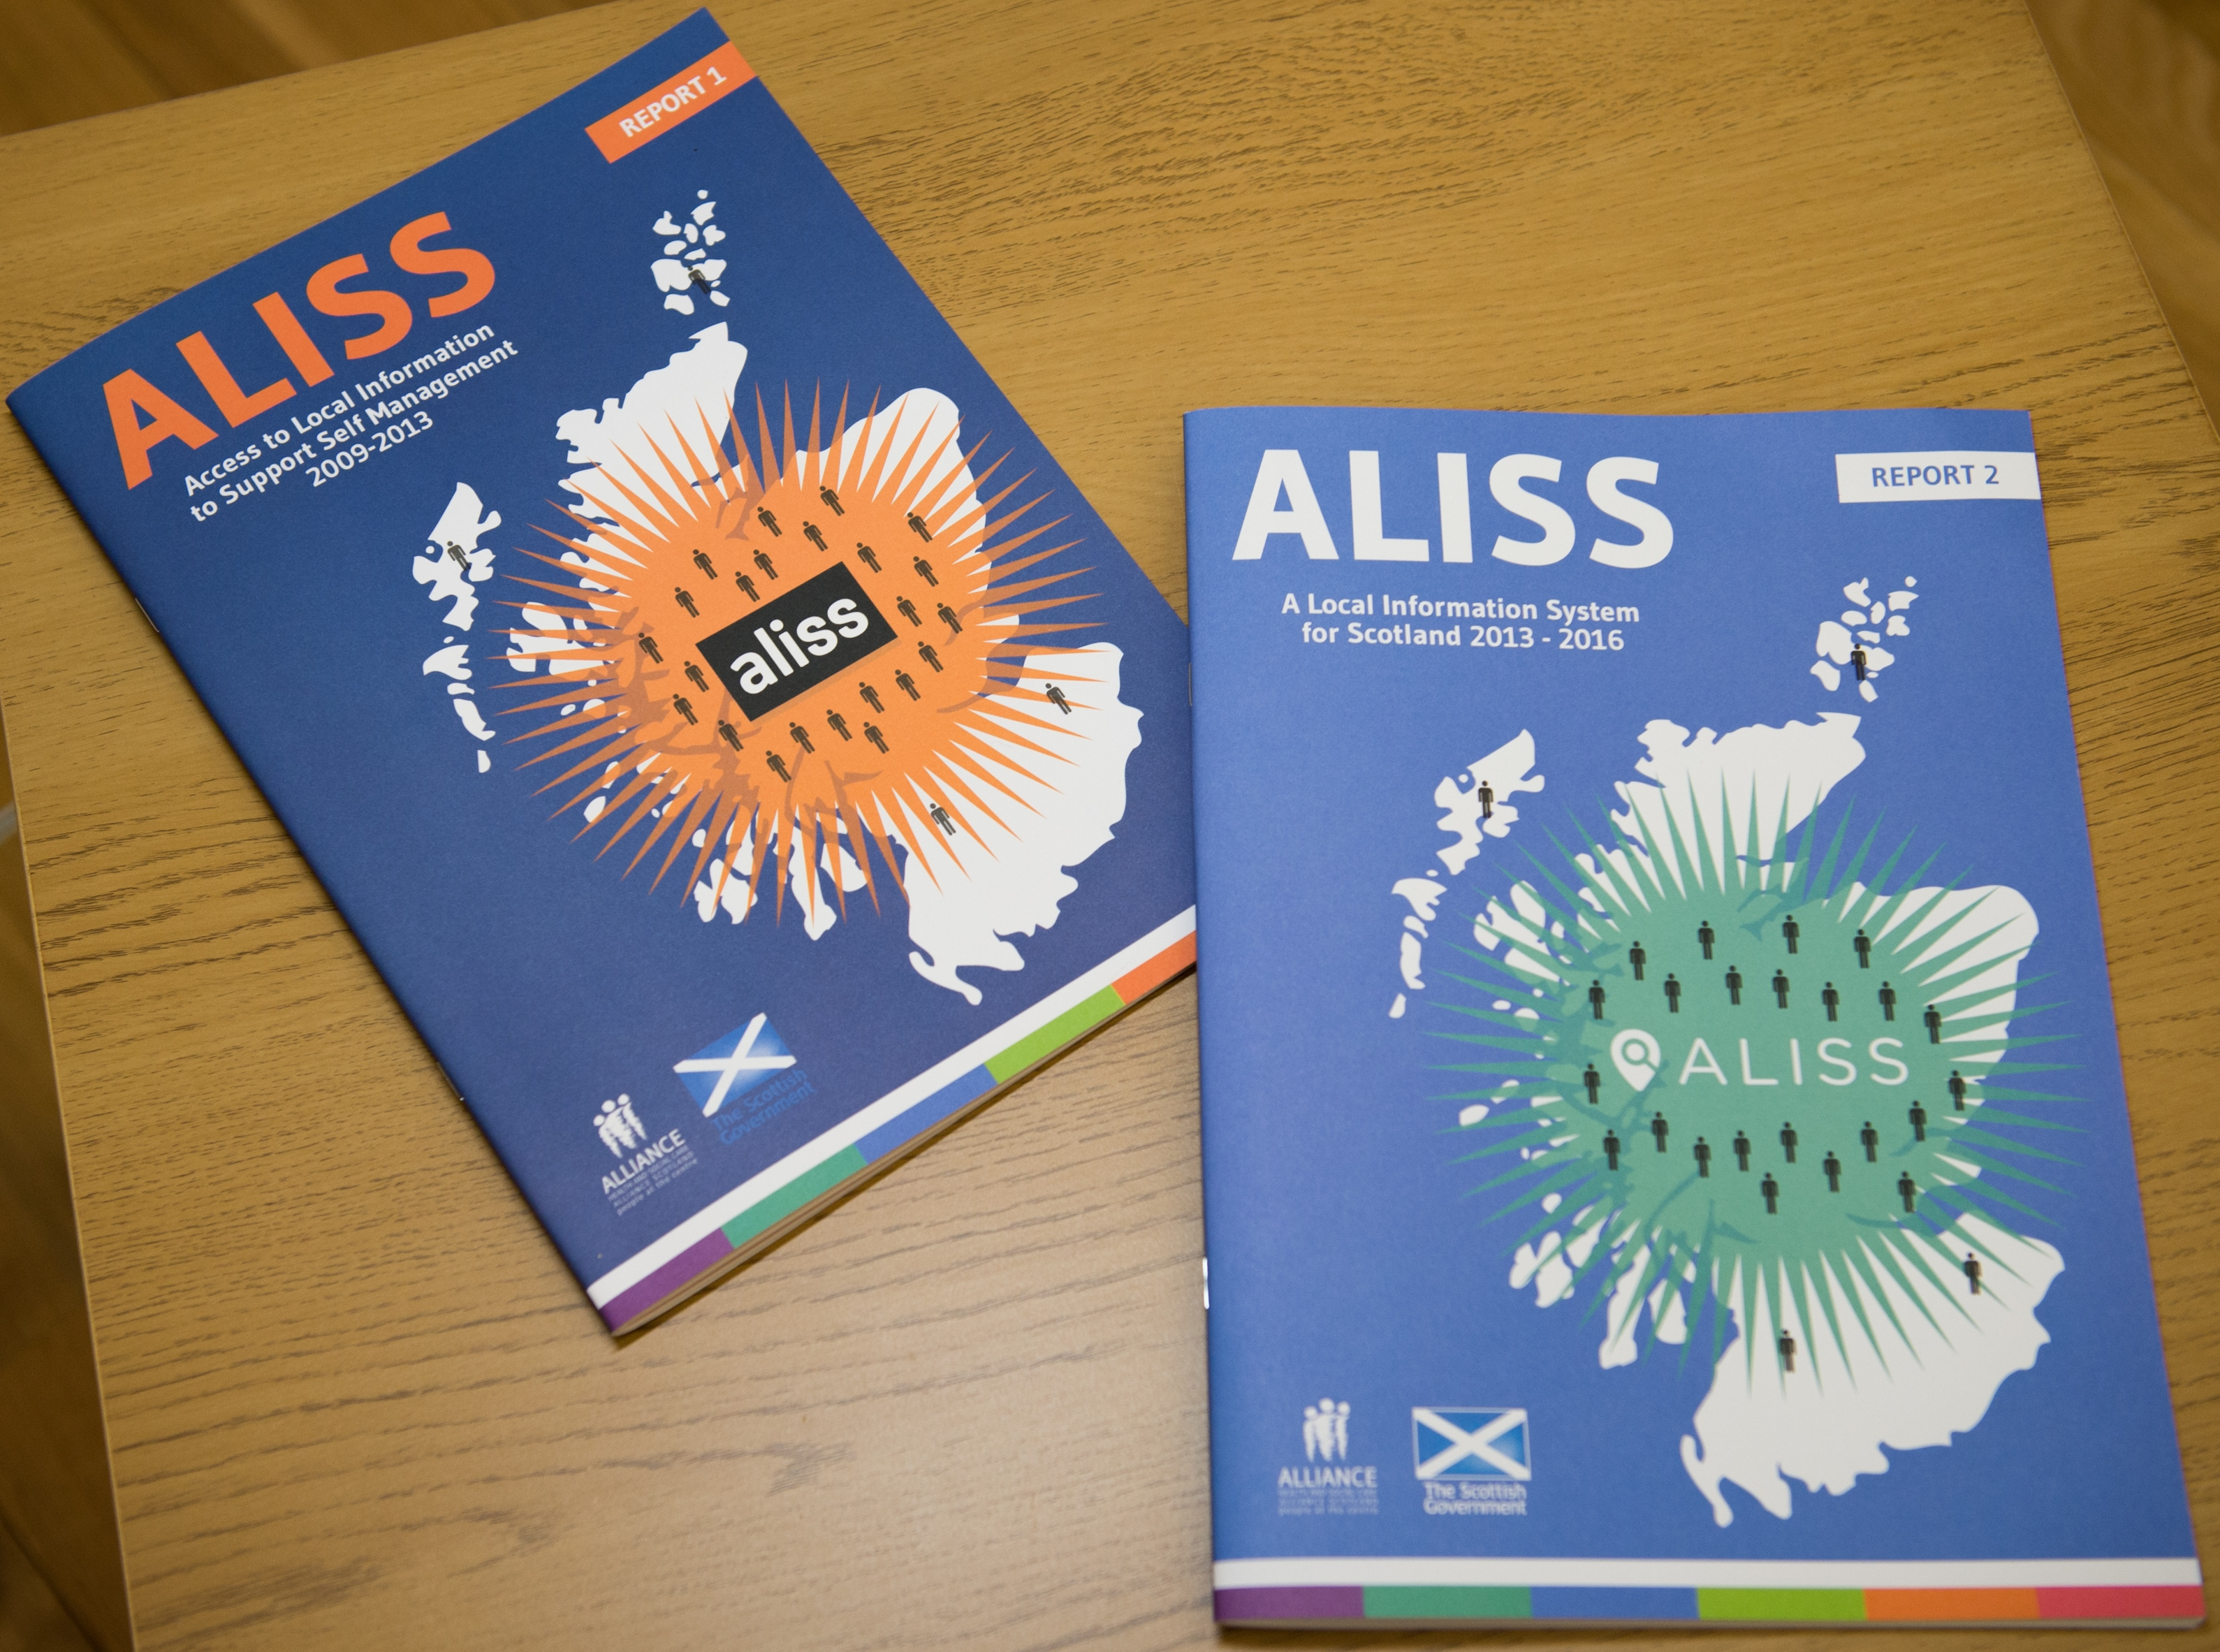 Alliance ALISS Reports1&2 - Health and Social Care Alliance